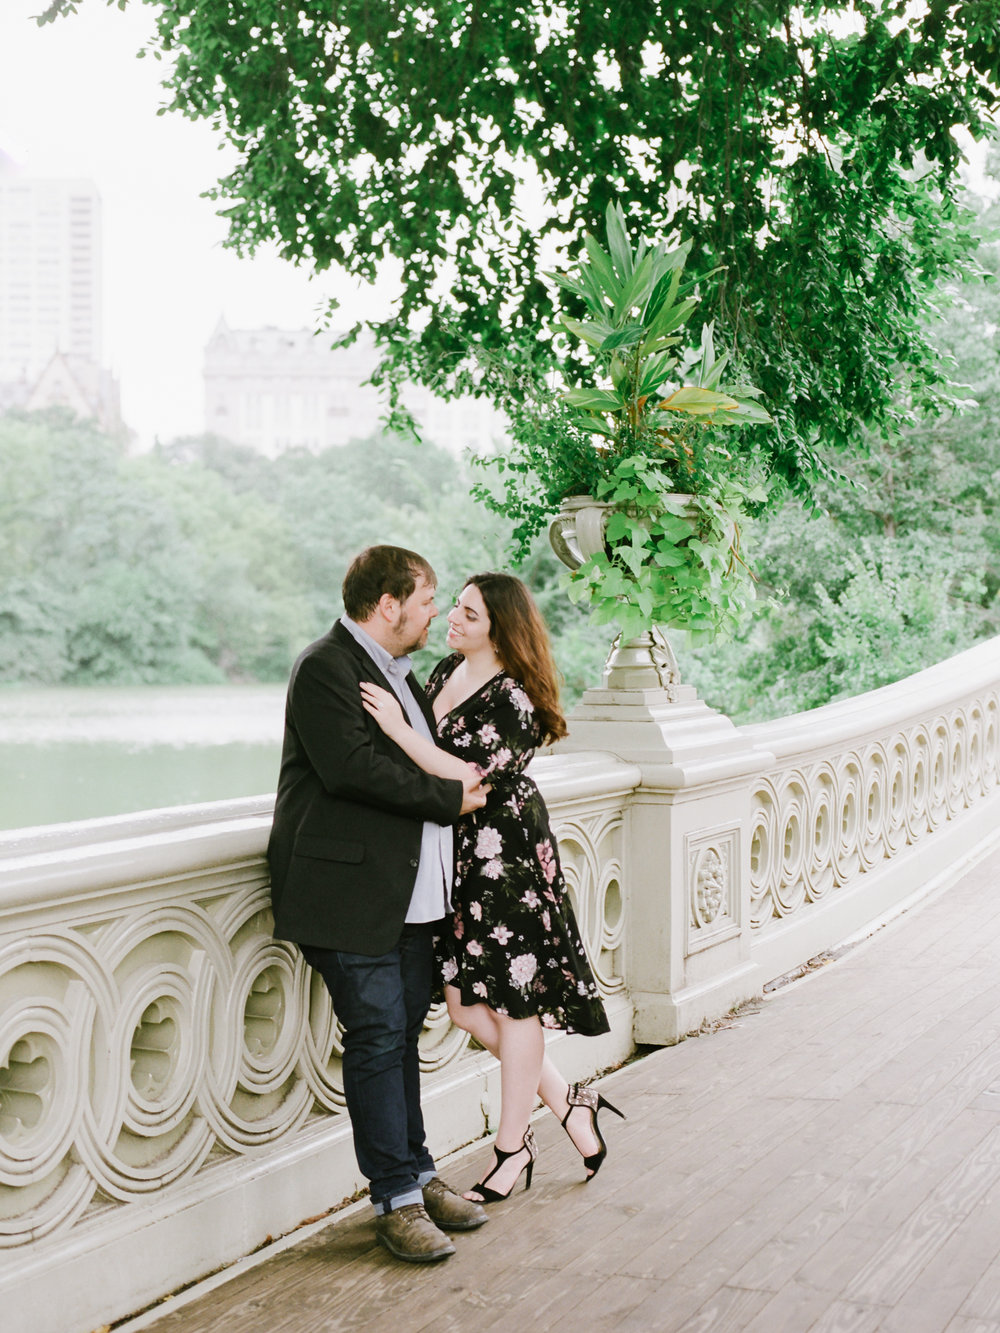 Central-Park-NYC-Engagement-Session-film-photography-17.jpg